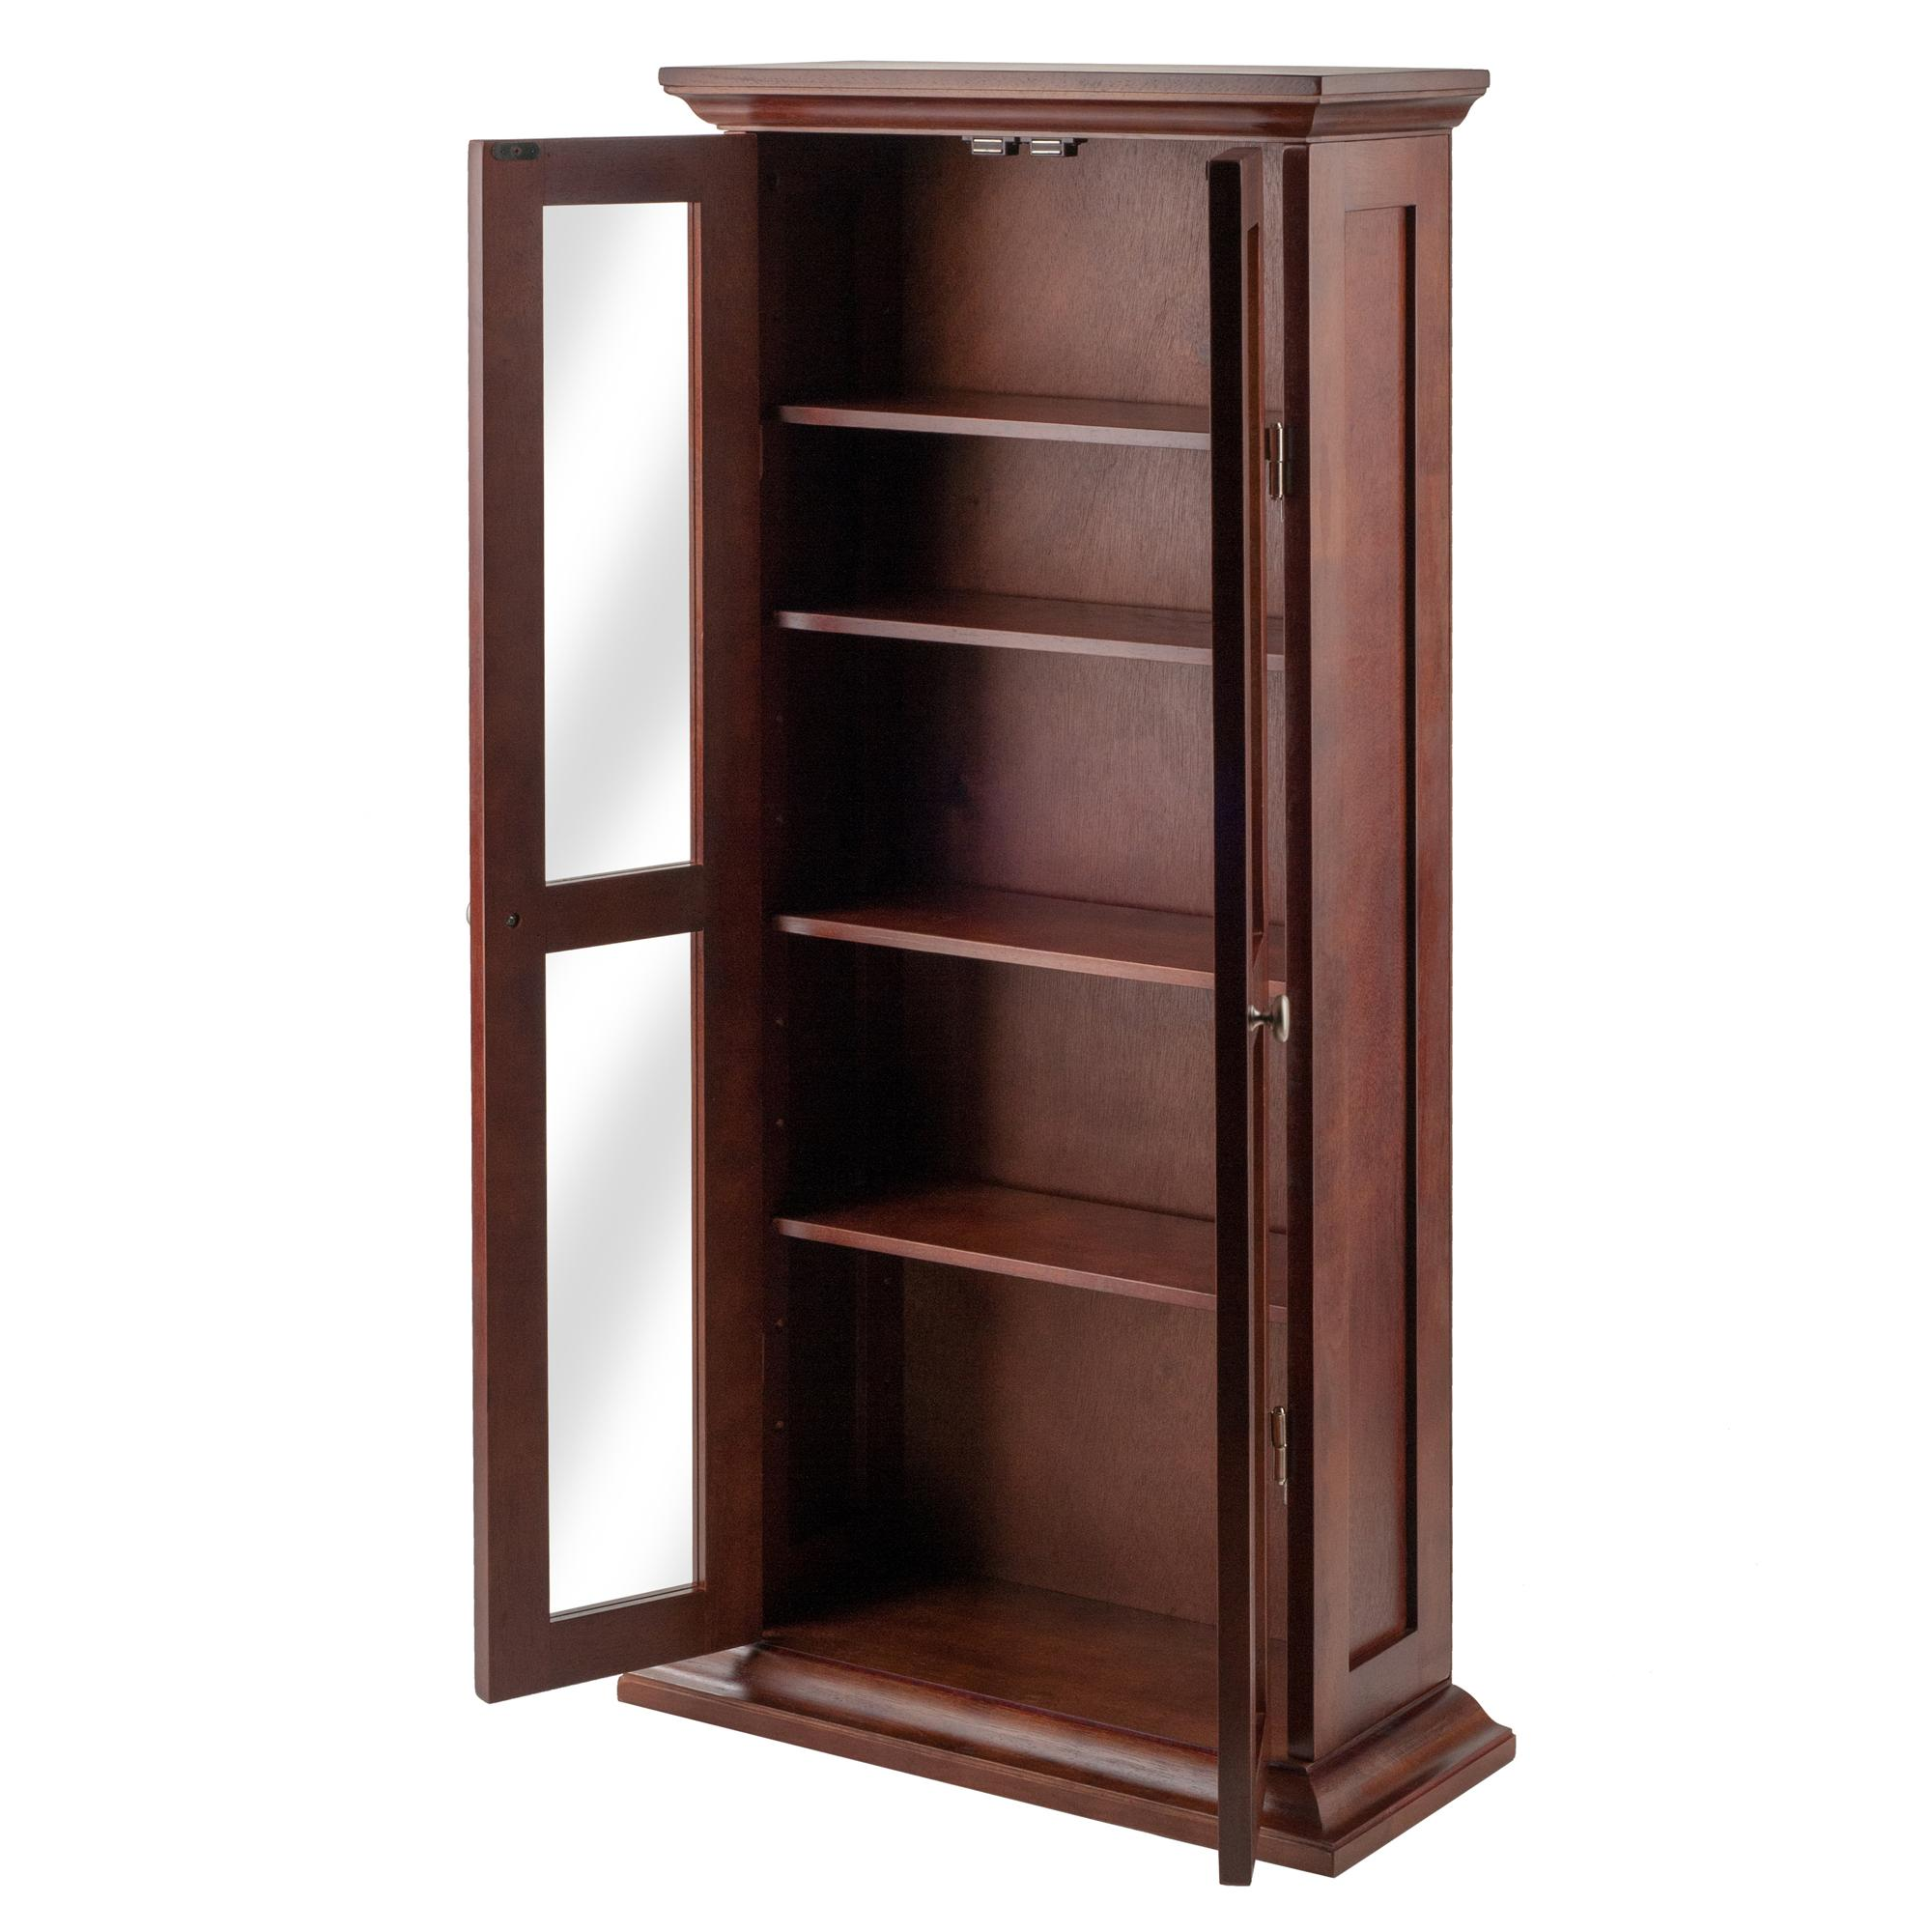 Winsome wood cd dvd cabinet with glass doors for Kitchen cabinets amazon